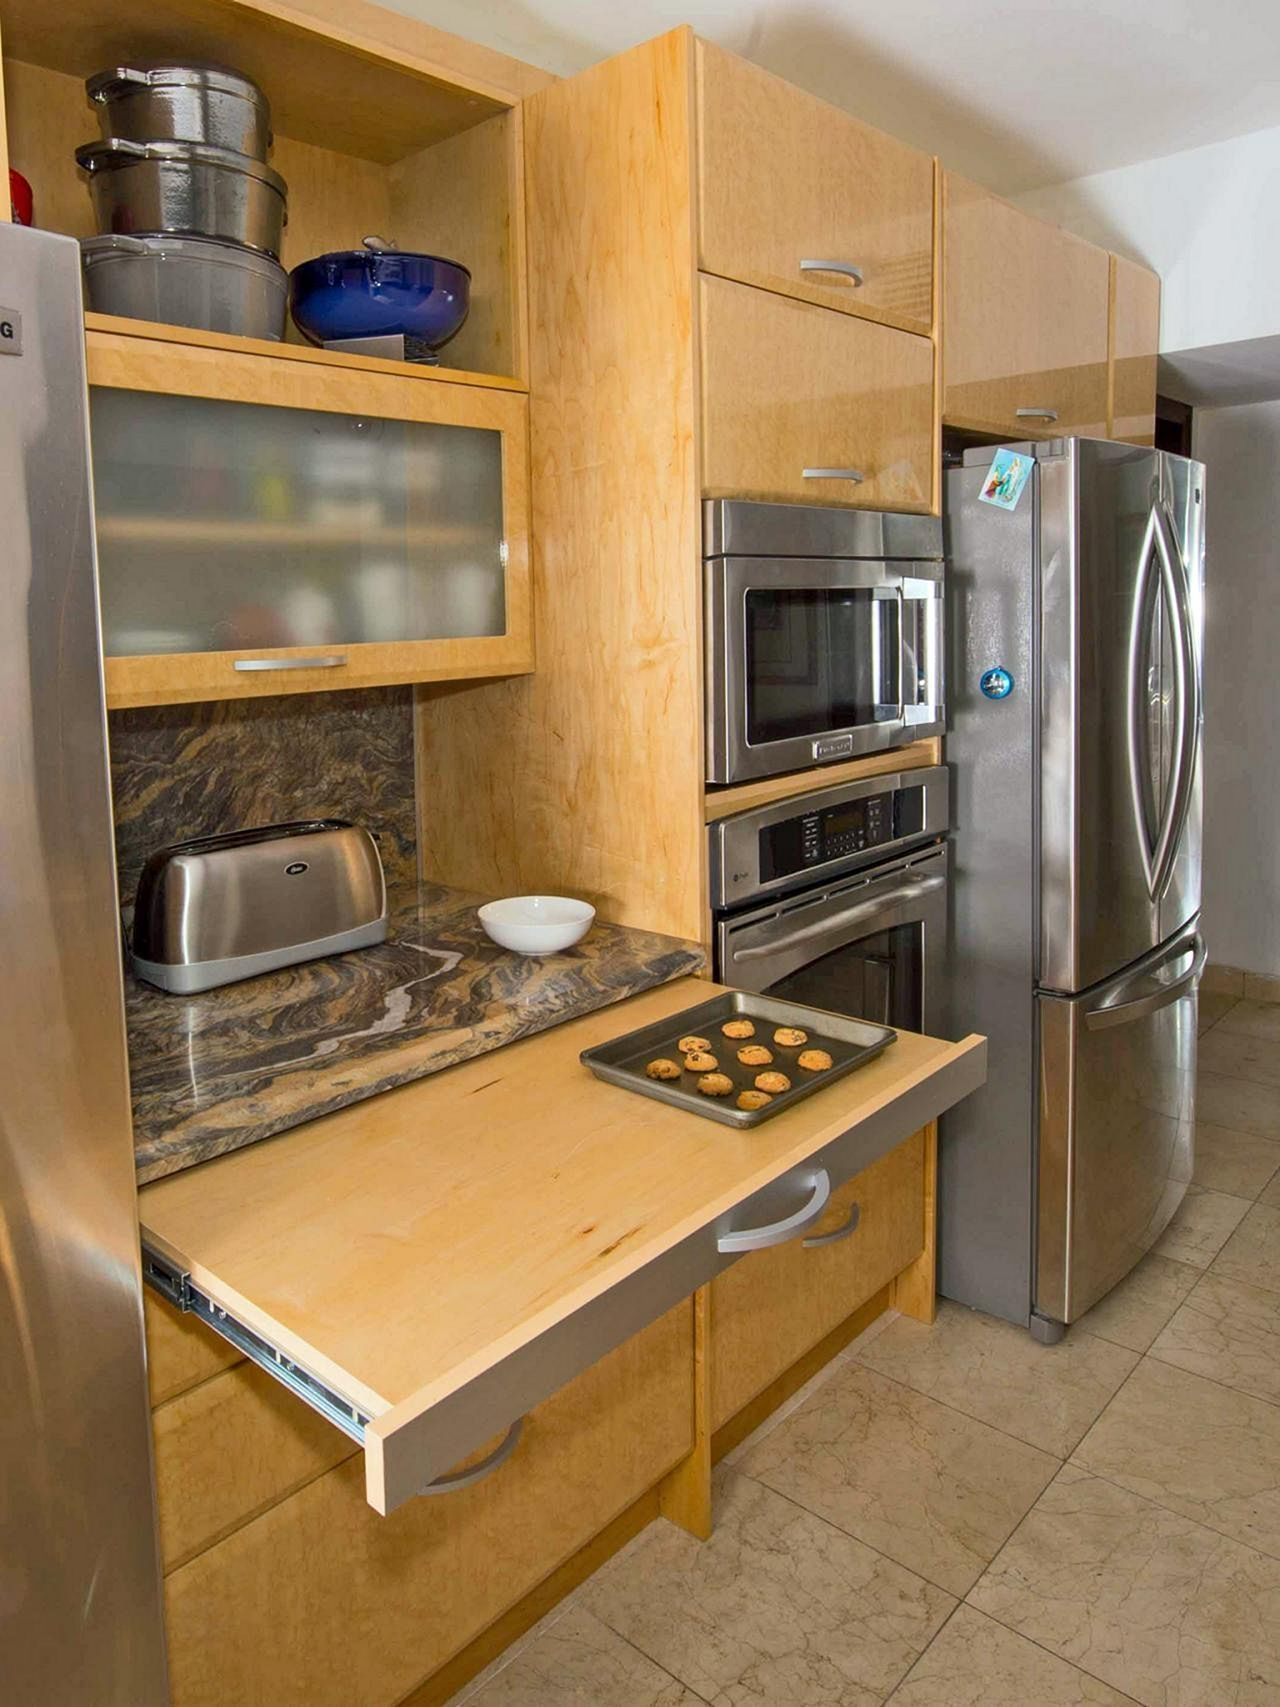 Affordable Small Kitchen Remodel Ideas28